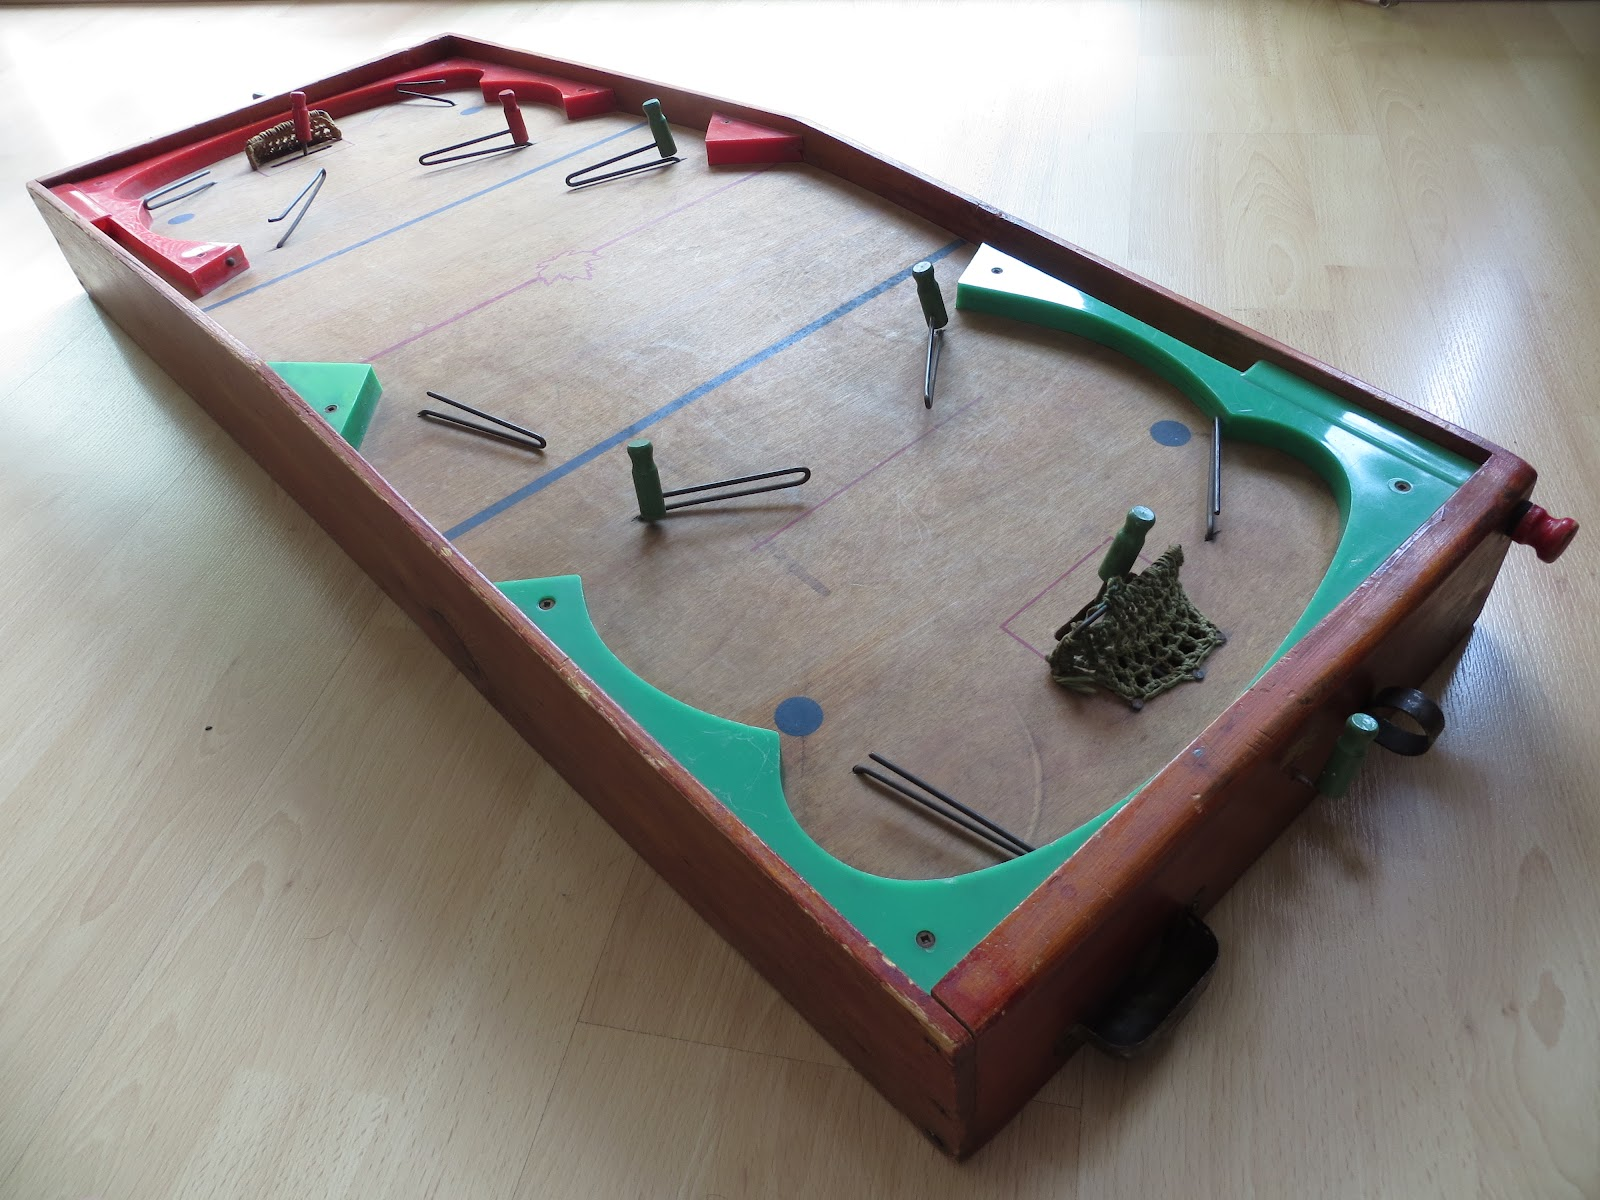 Nitzy 39 s hockey den table hockey circa 1948 for Table hockey